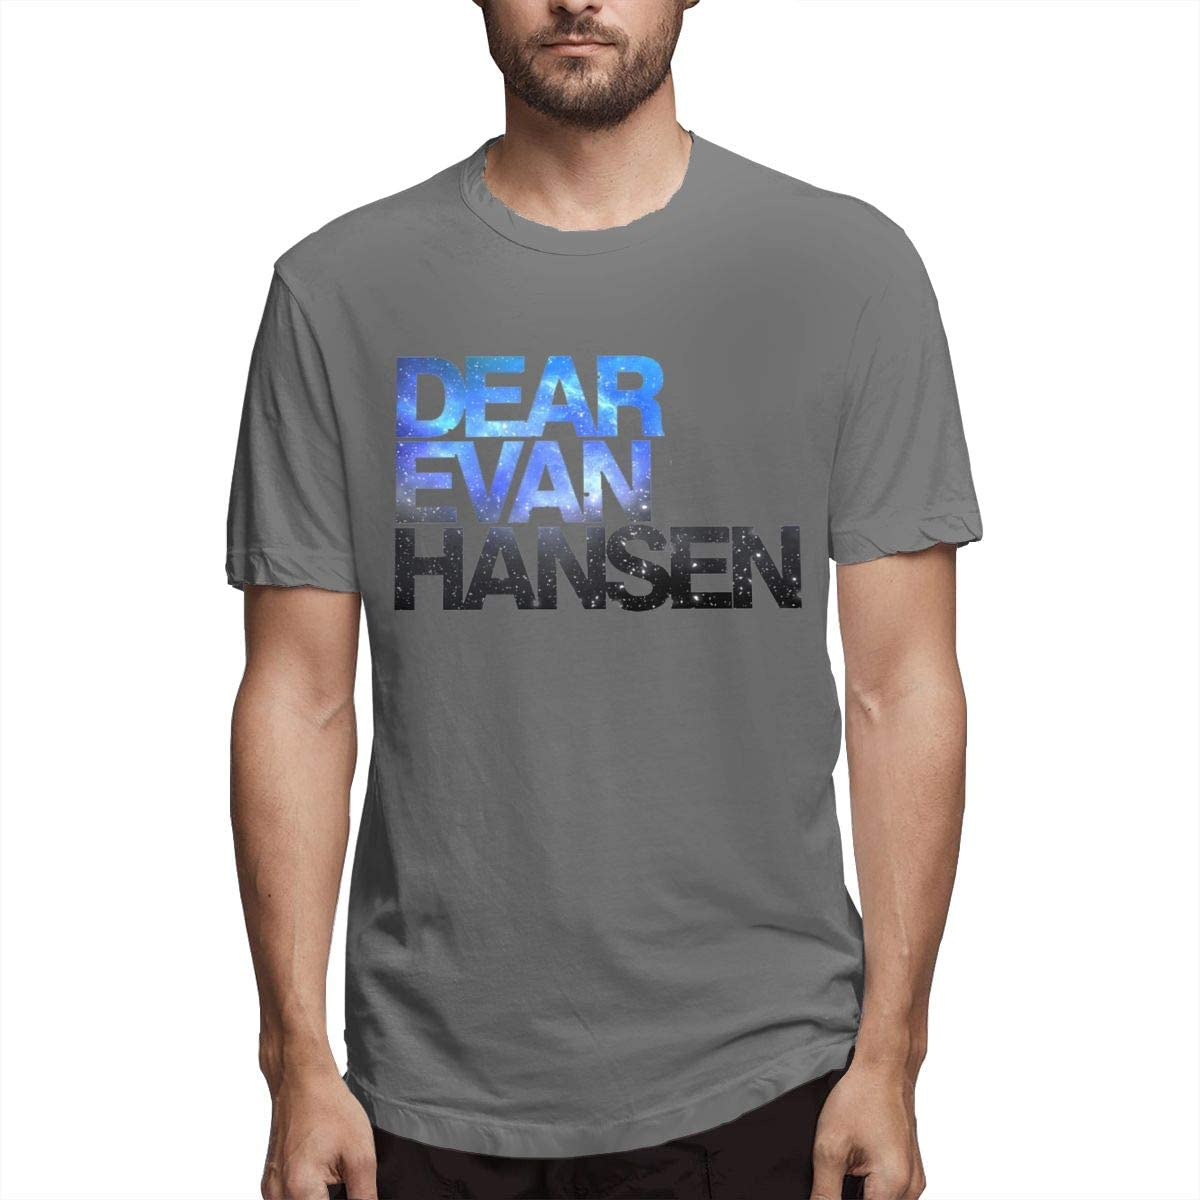 Fishoceany Printed T-Shirts with Dear Evan Hansen Design Running Men's Top